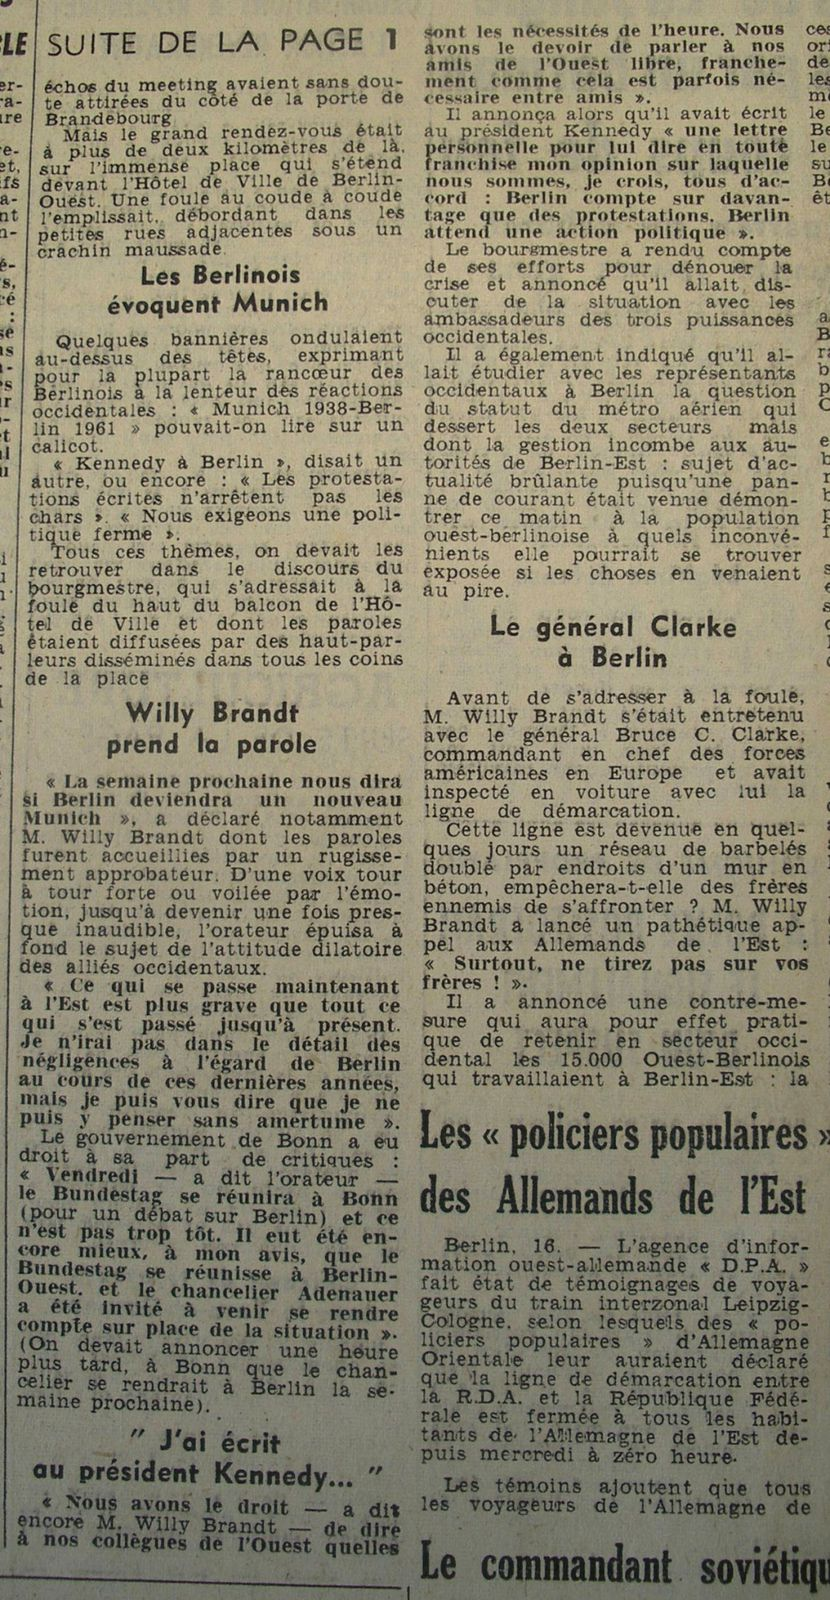 Discours-Willy-Brand-Aout-1961.JPG